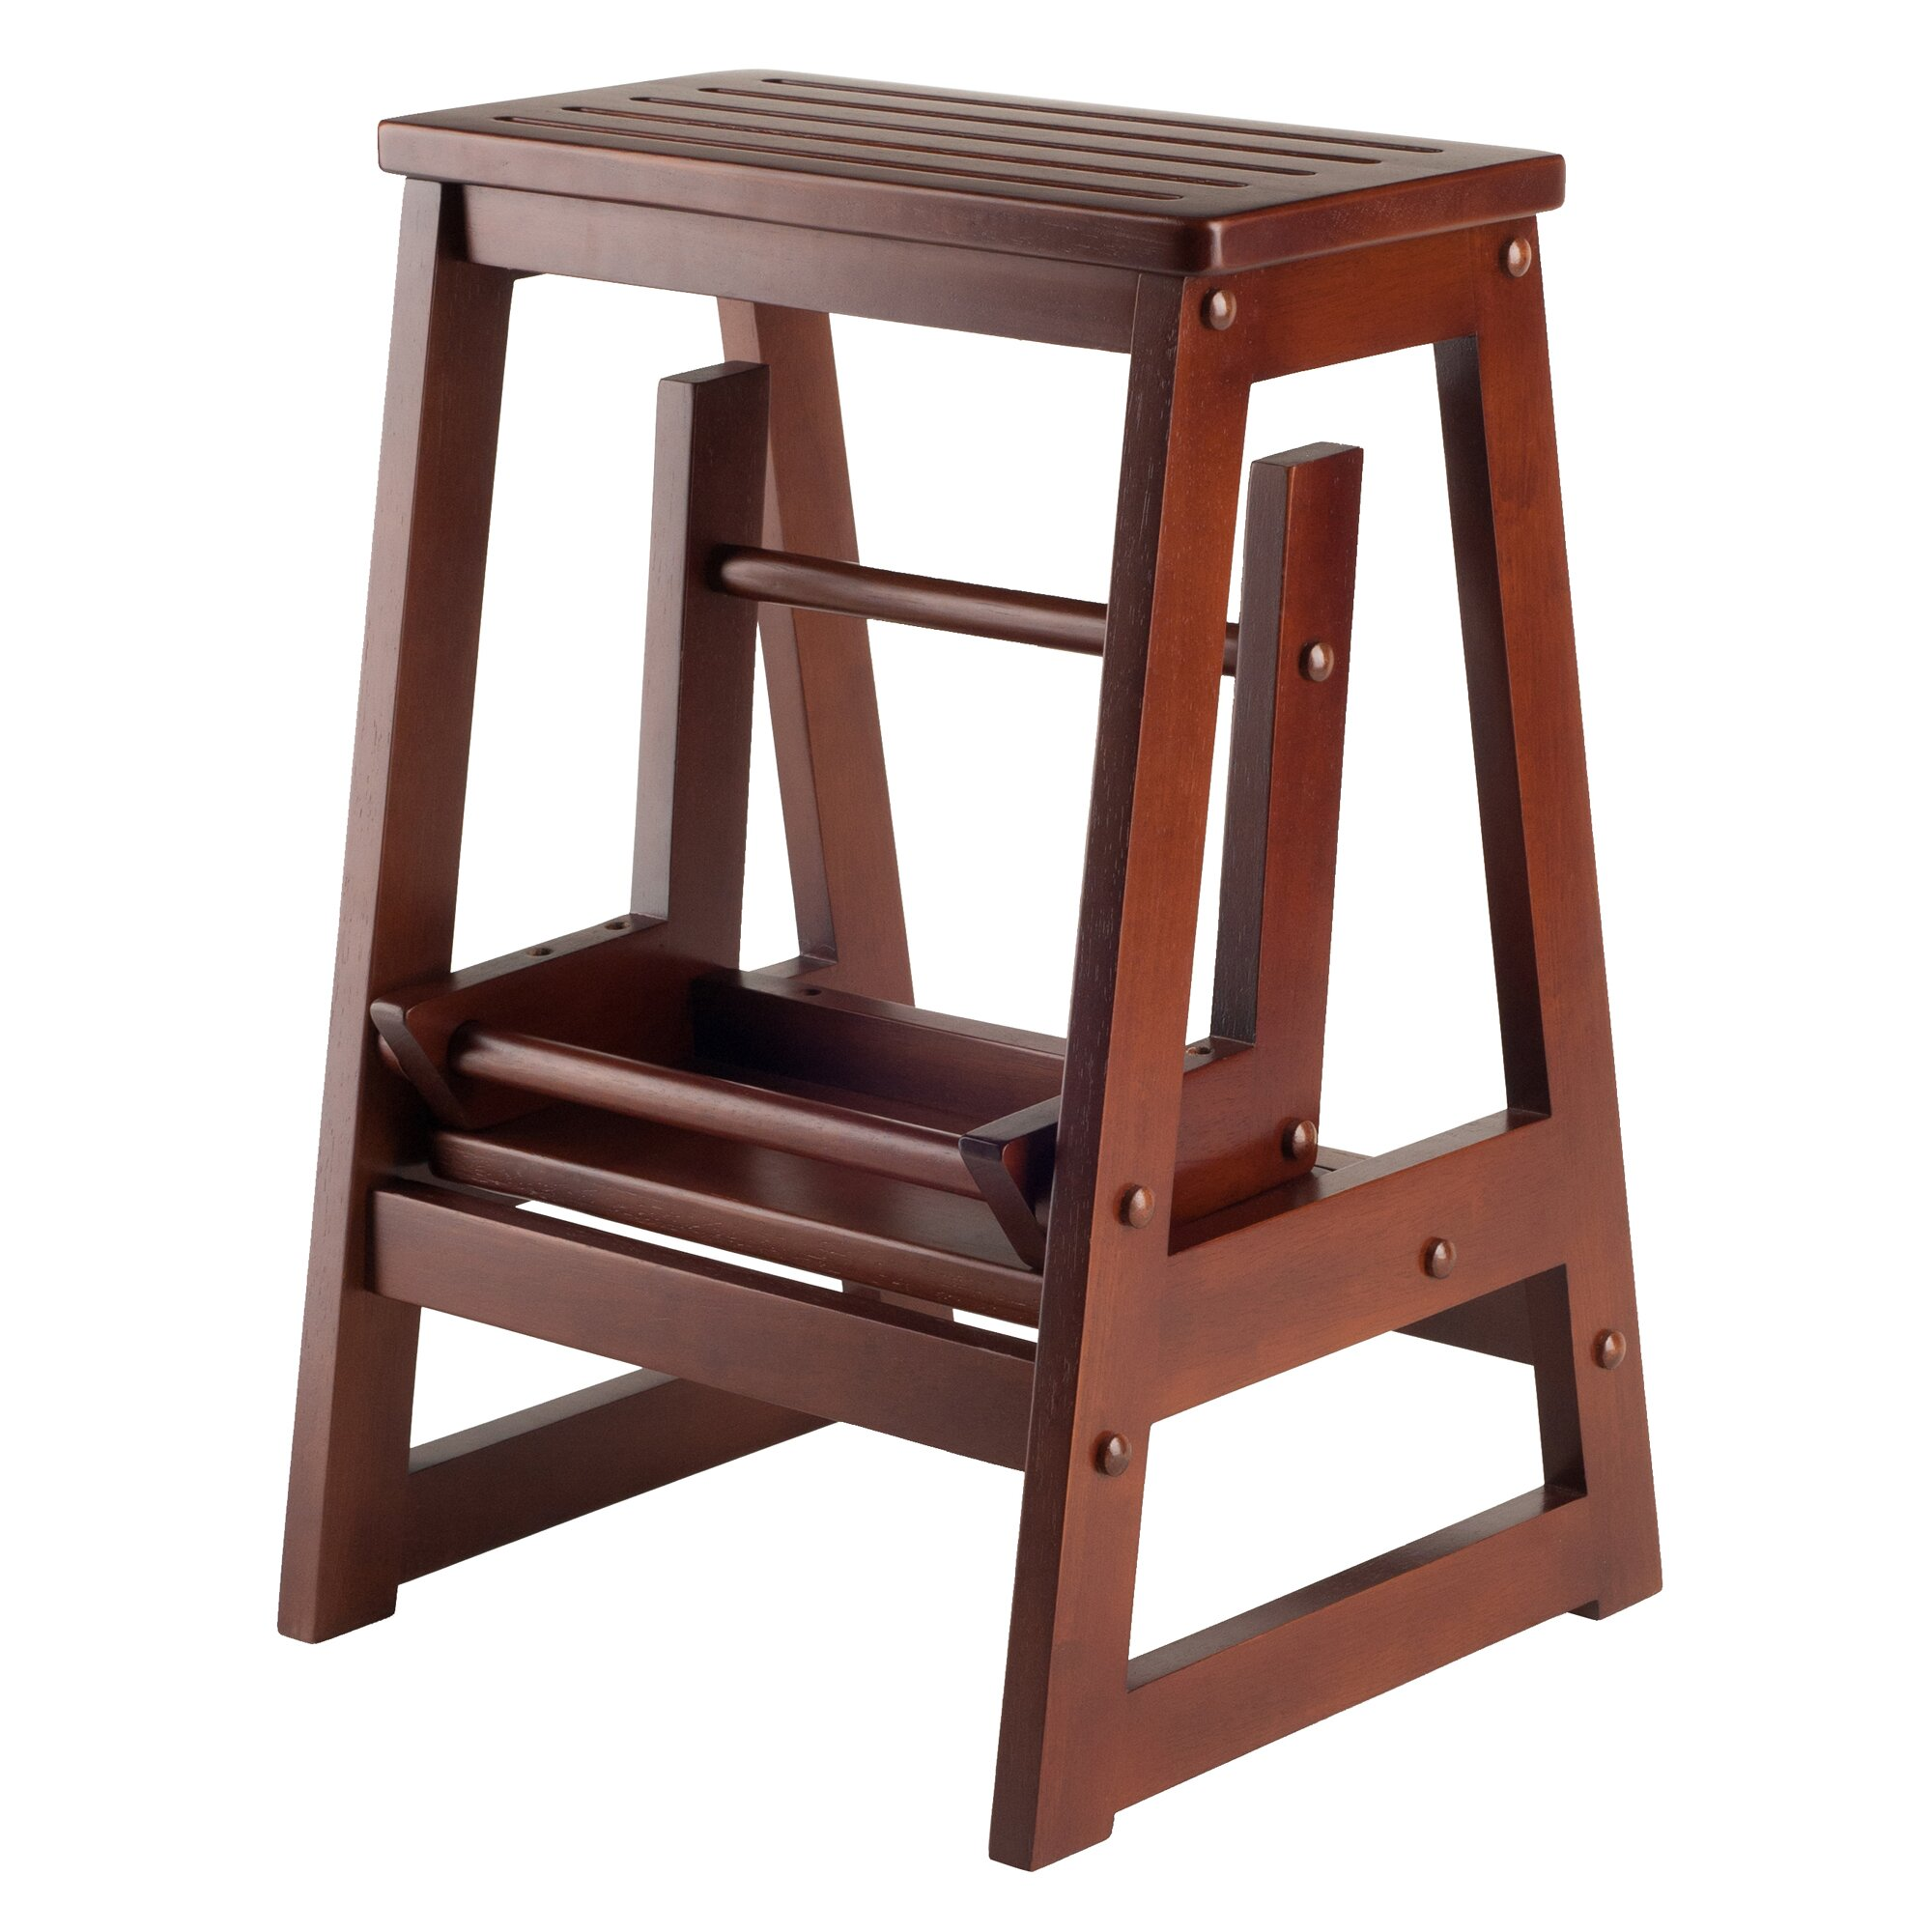 Step Stool For Bedroom Ladders Step Stools Youll Love Wayfair